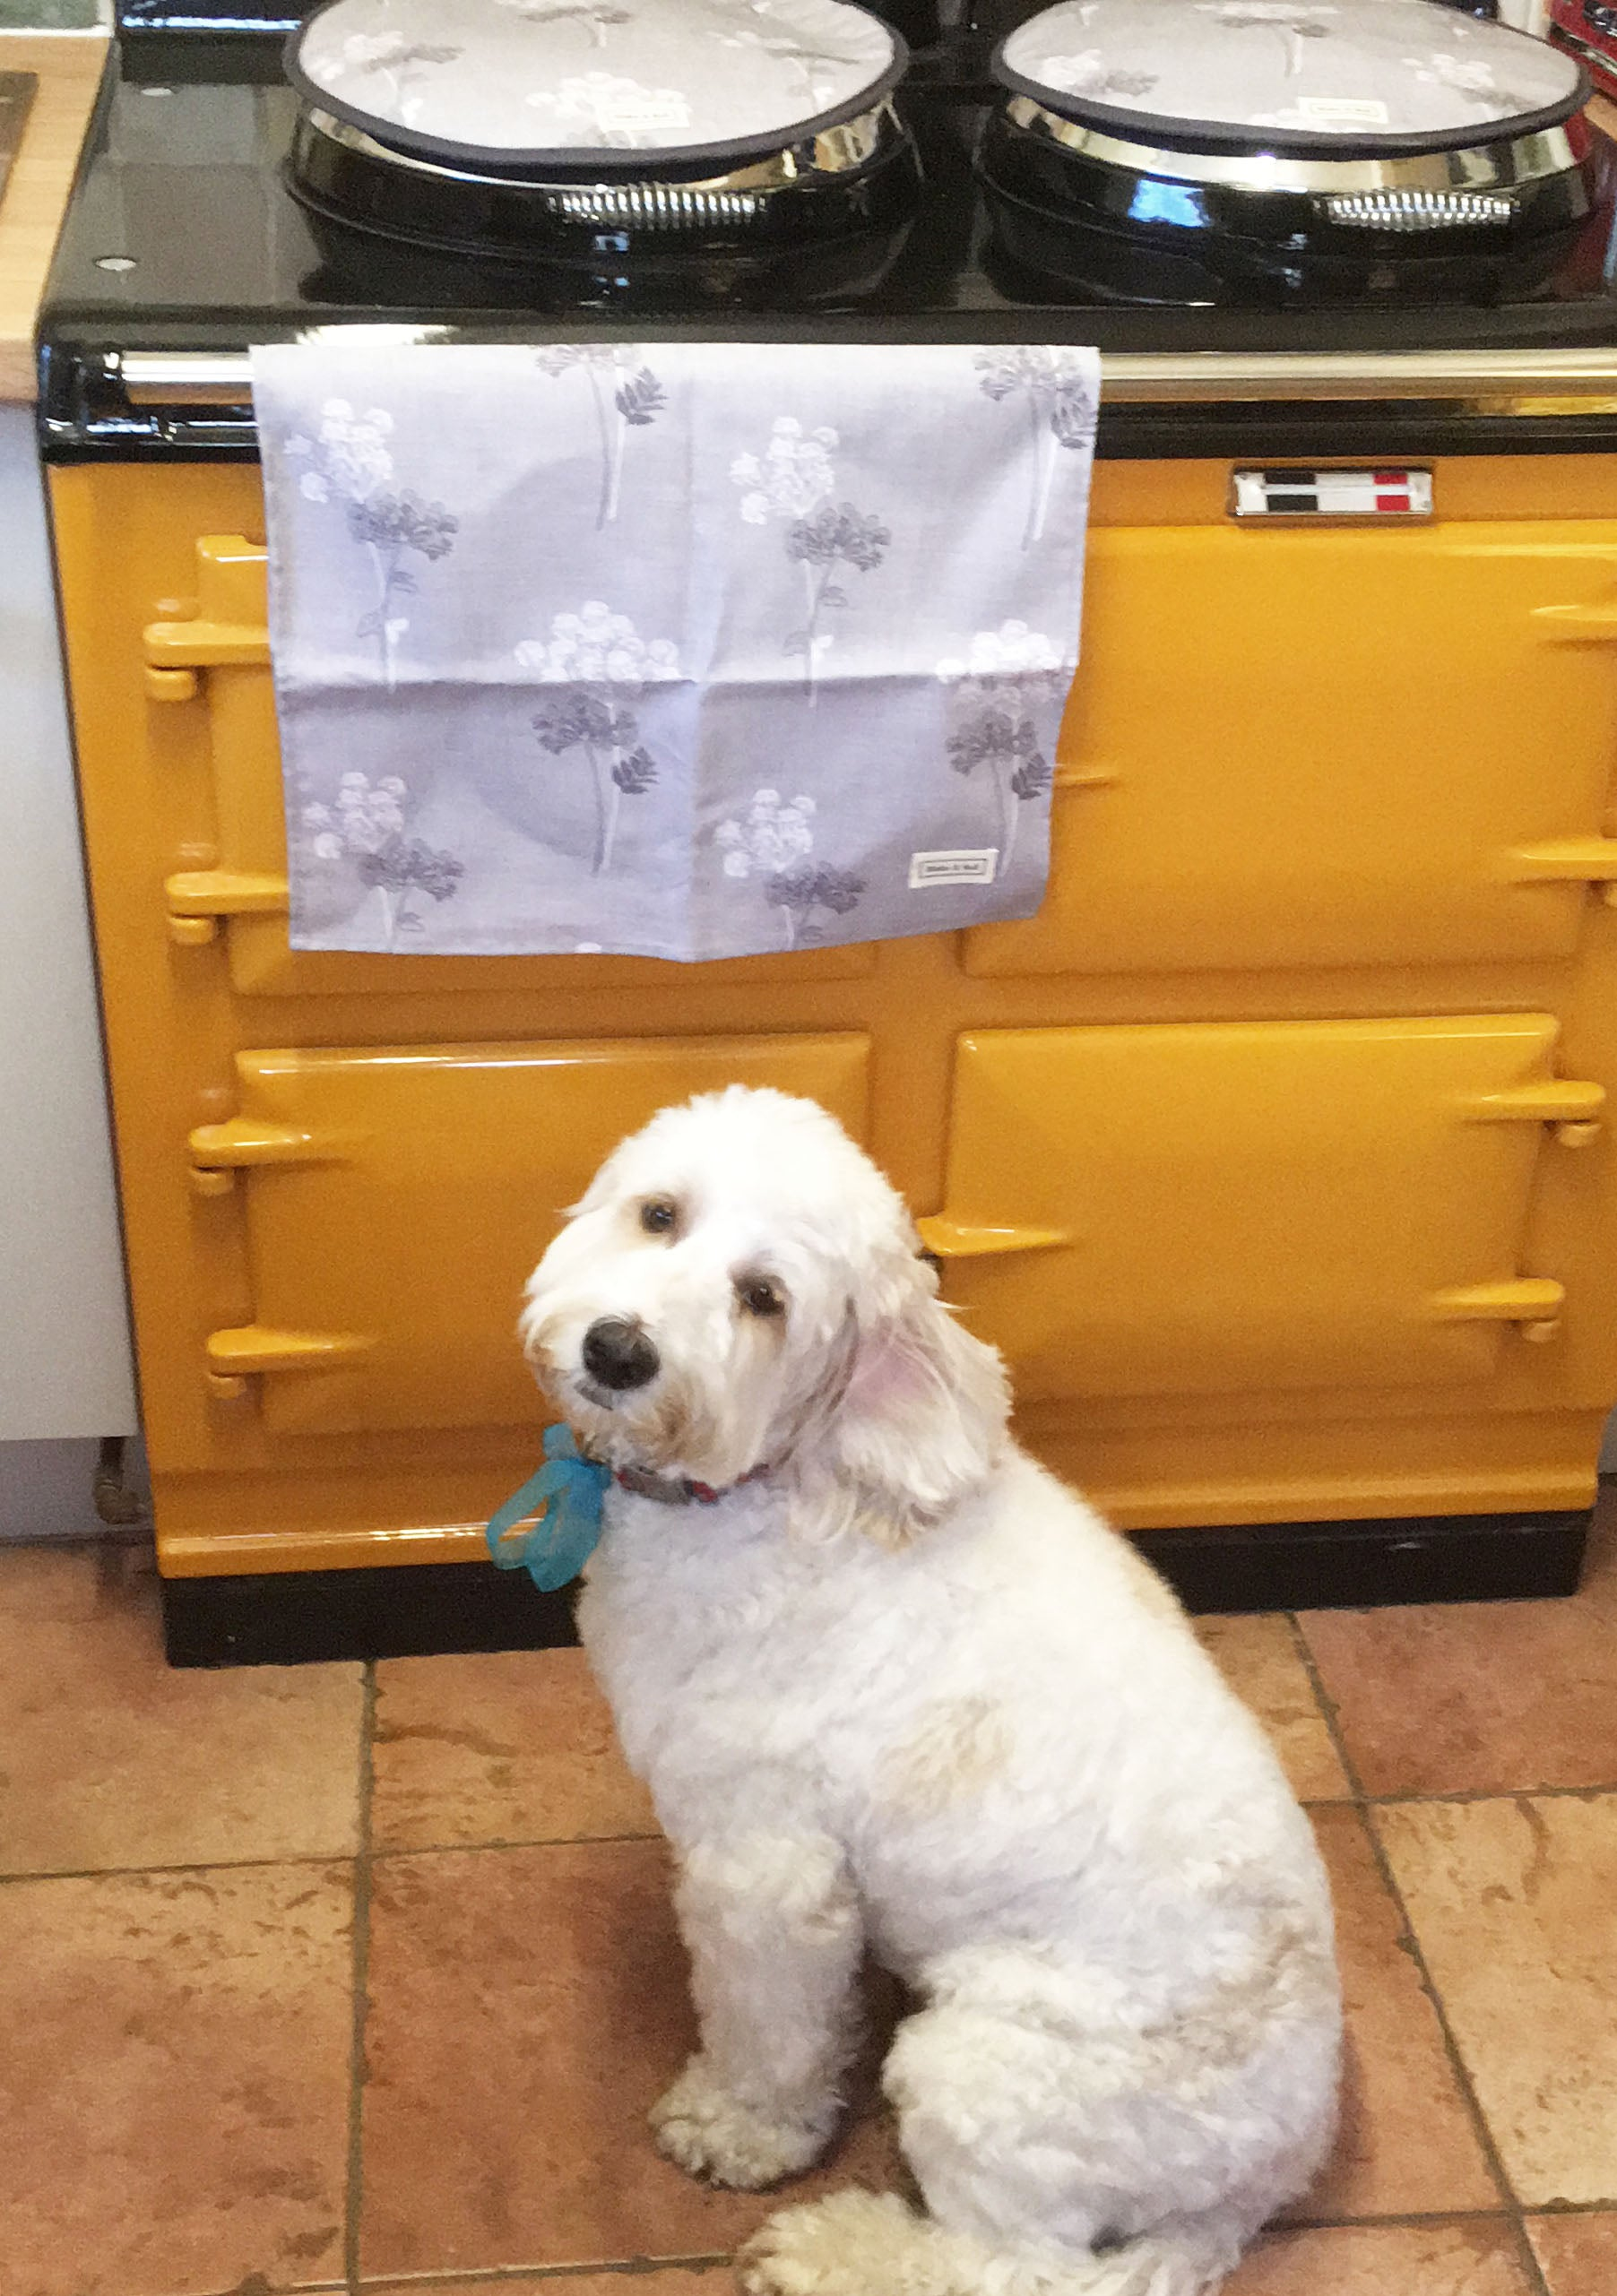 Golden yellow Aga range cooker with dog